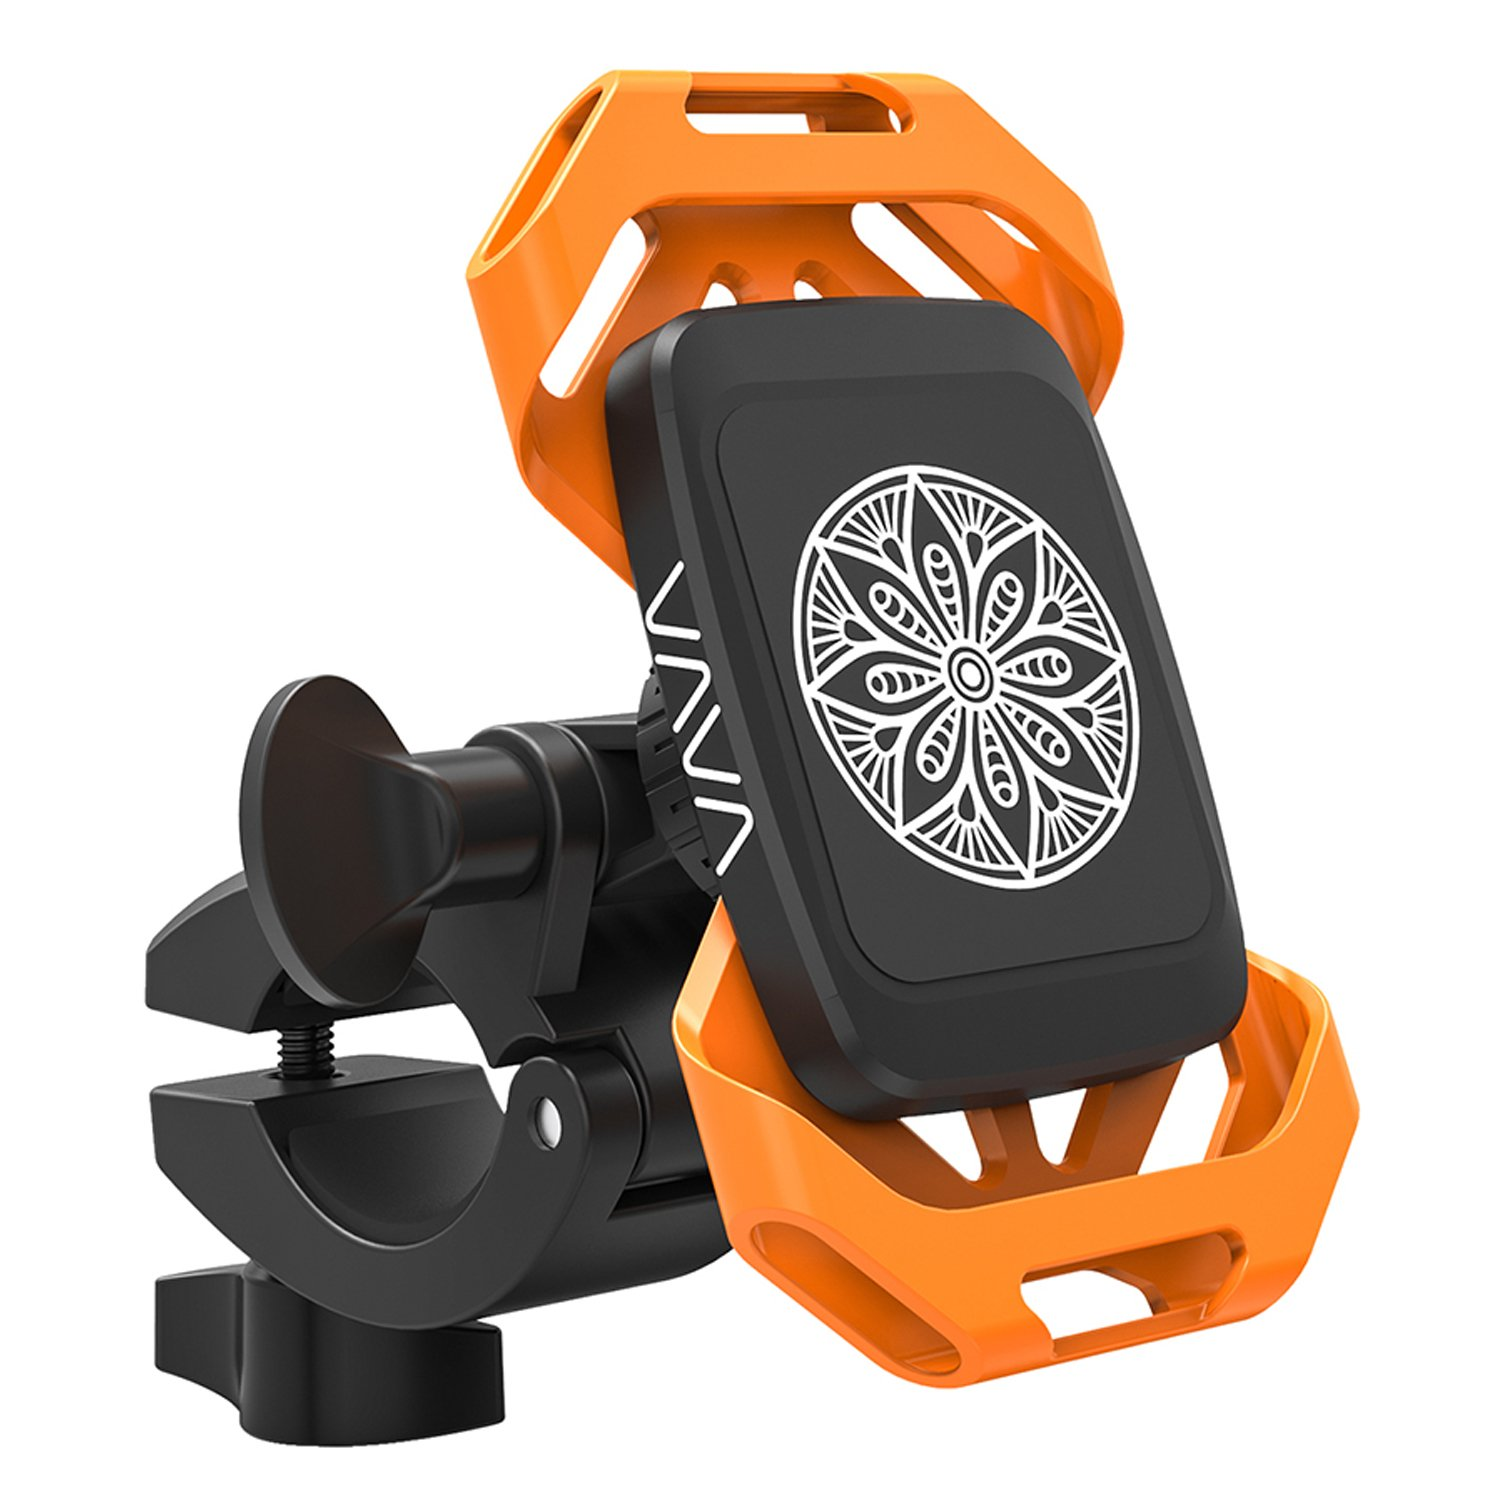 VAVA Bike Phone Mount Phone Holder for Bike with Triangular Shape Arms to Keep Phones Safe One-Handed Operation, 360 Degree Rotation, Fits Bicycles, Motorbikes, Scooters /& Prams